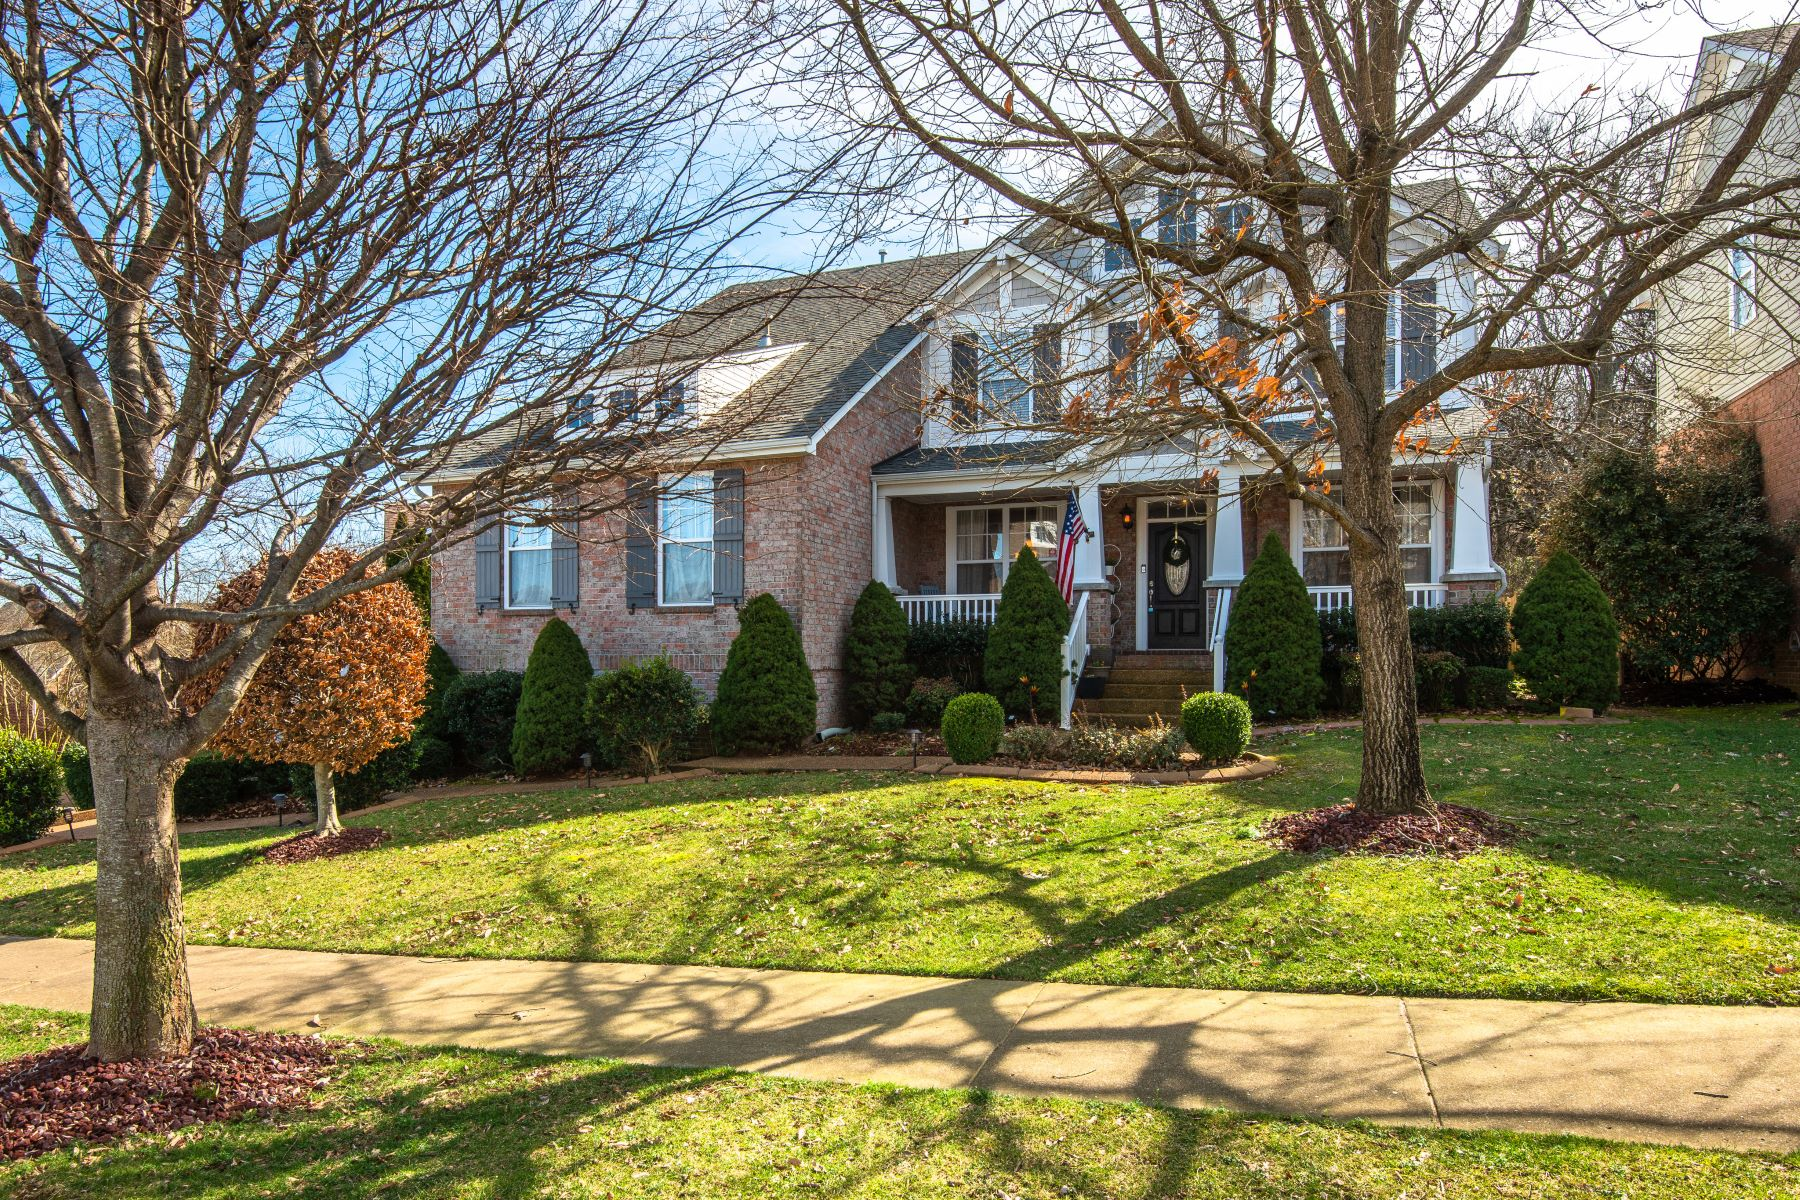 Single Family Home for Sale at Fabulous Five Bedroom Home on Quiet Cul-De-Sac! 1319 Tilton Drive Franklin, Tennessee 37067 United States